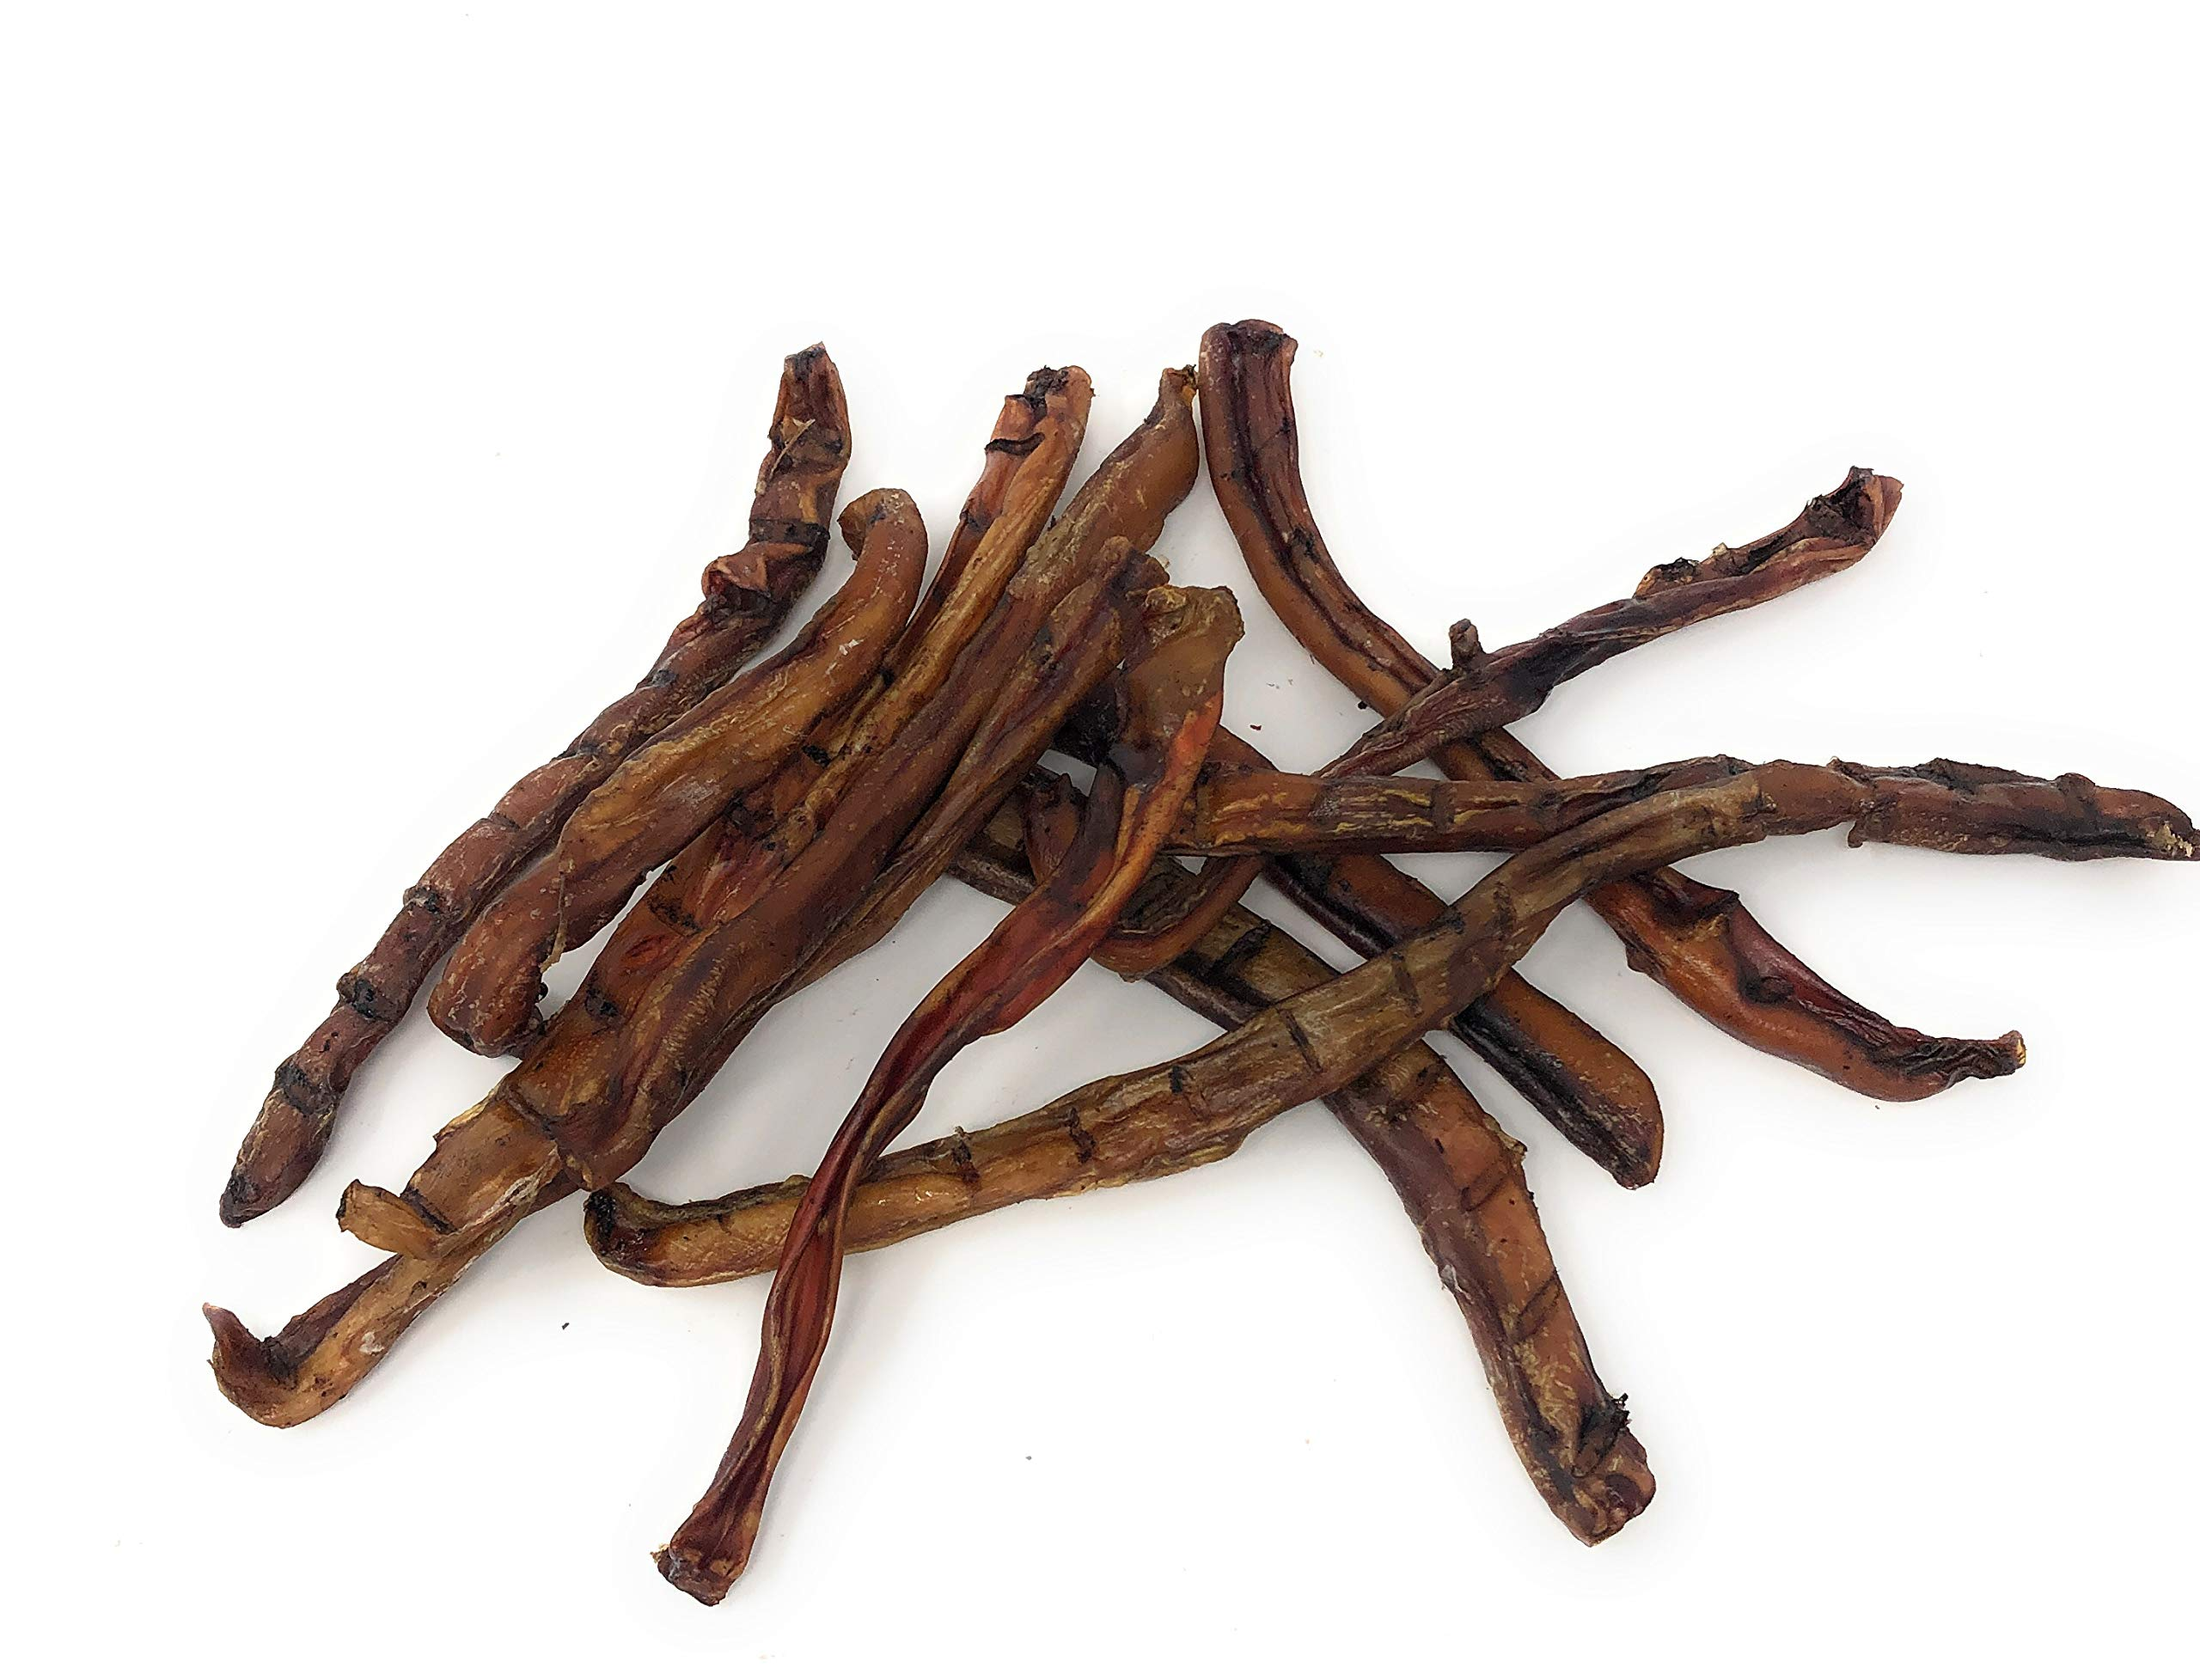 100% All Natural Beef Bully Sticks- Premium Grass Fed Beef Dog Chews- Smoked, Healthy Bully Sticks – Sourced and Made in The USA- No Additives or Artificial Preservatives- 12 Pack of 6-8 Inch Sticks by Jack's Premium (Image #1)